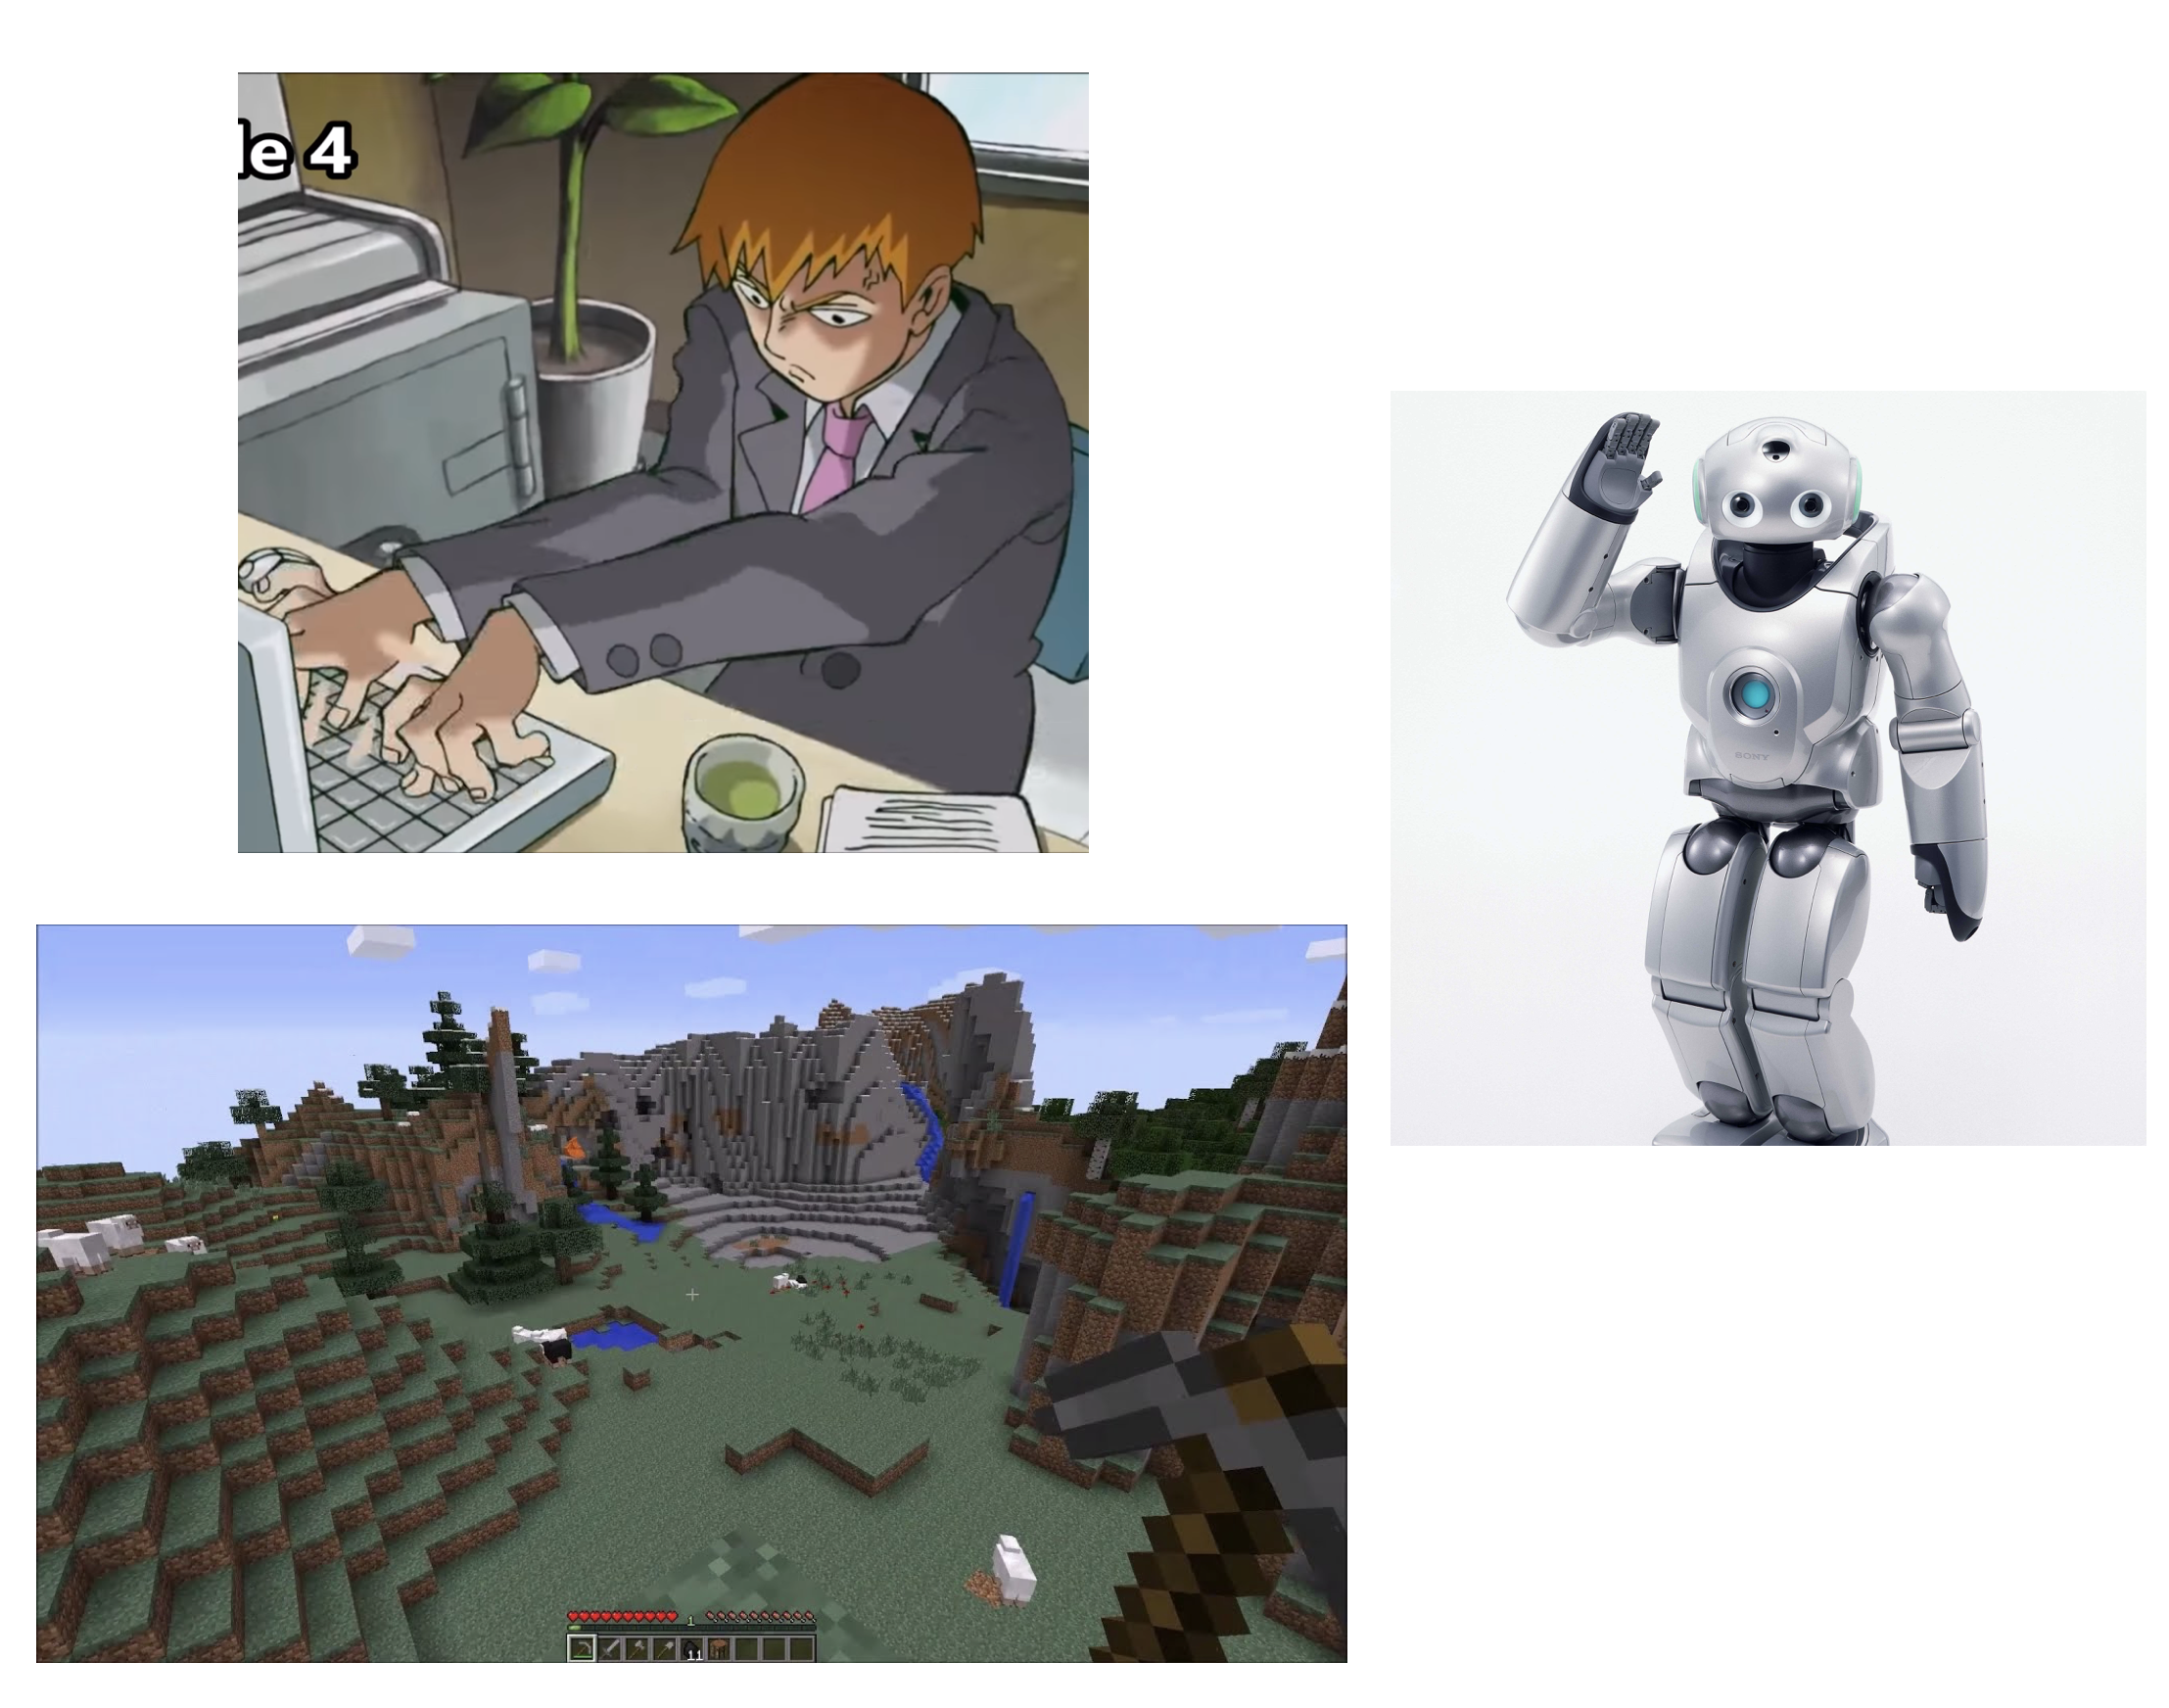 A man at his computer, a robot, and a picture of Minecraft.